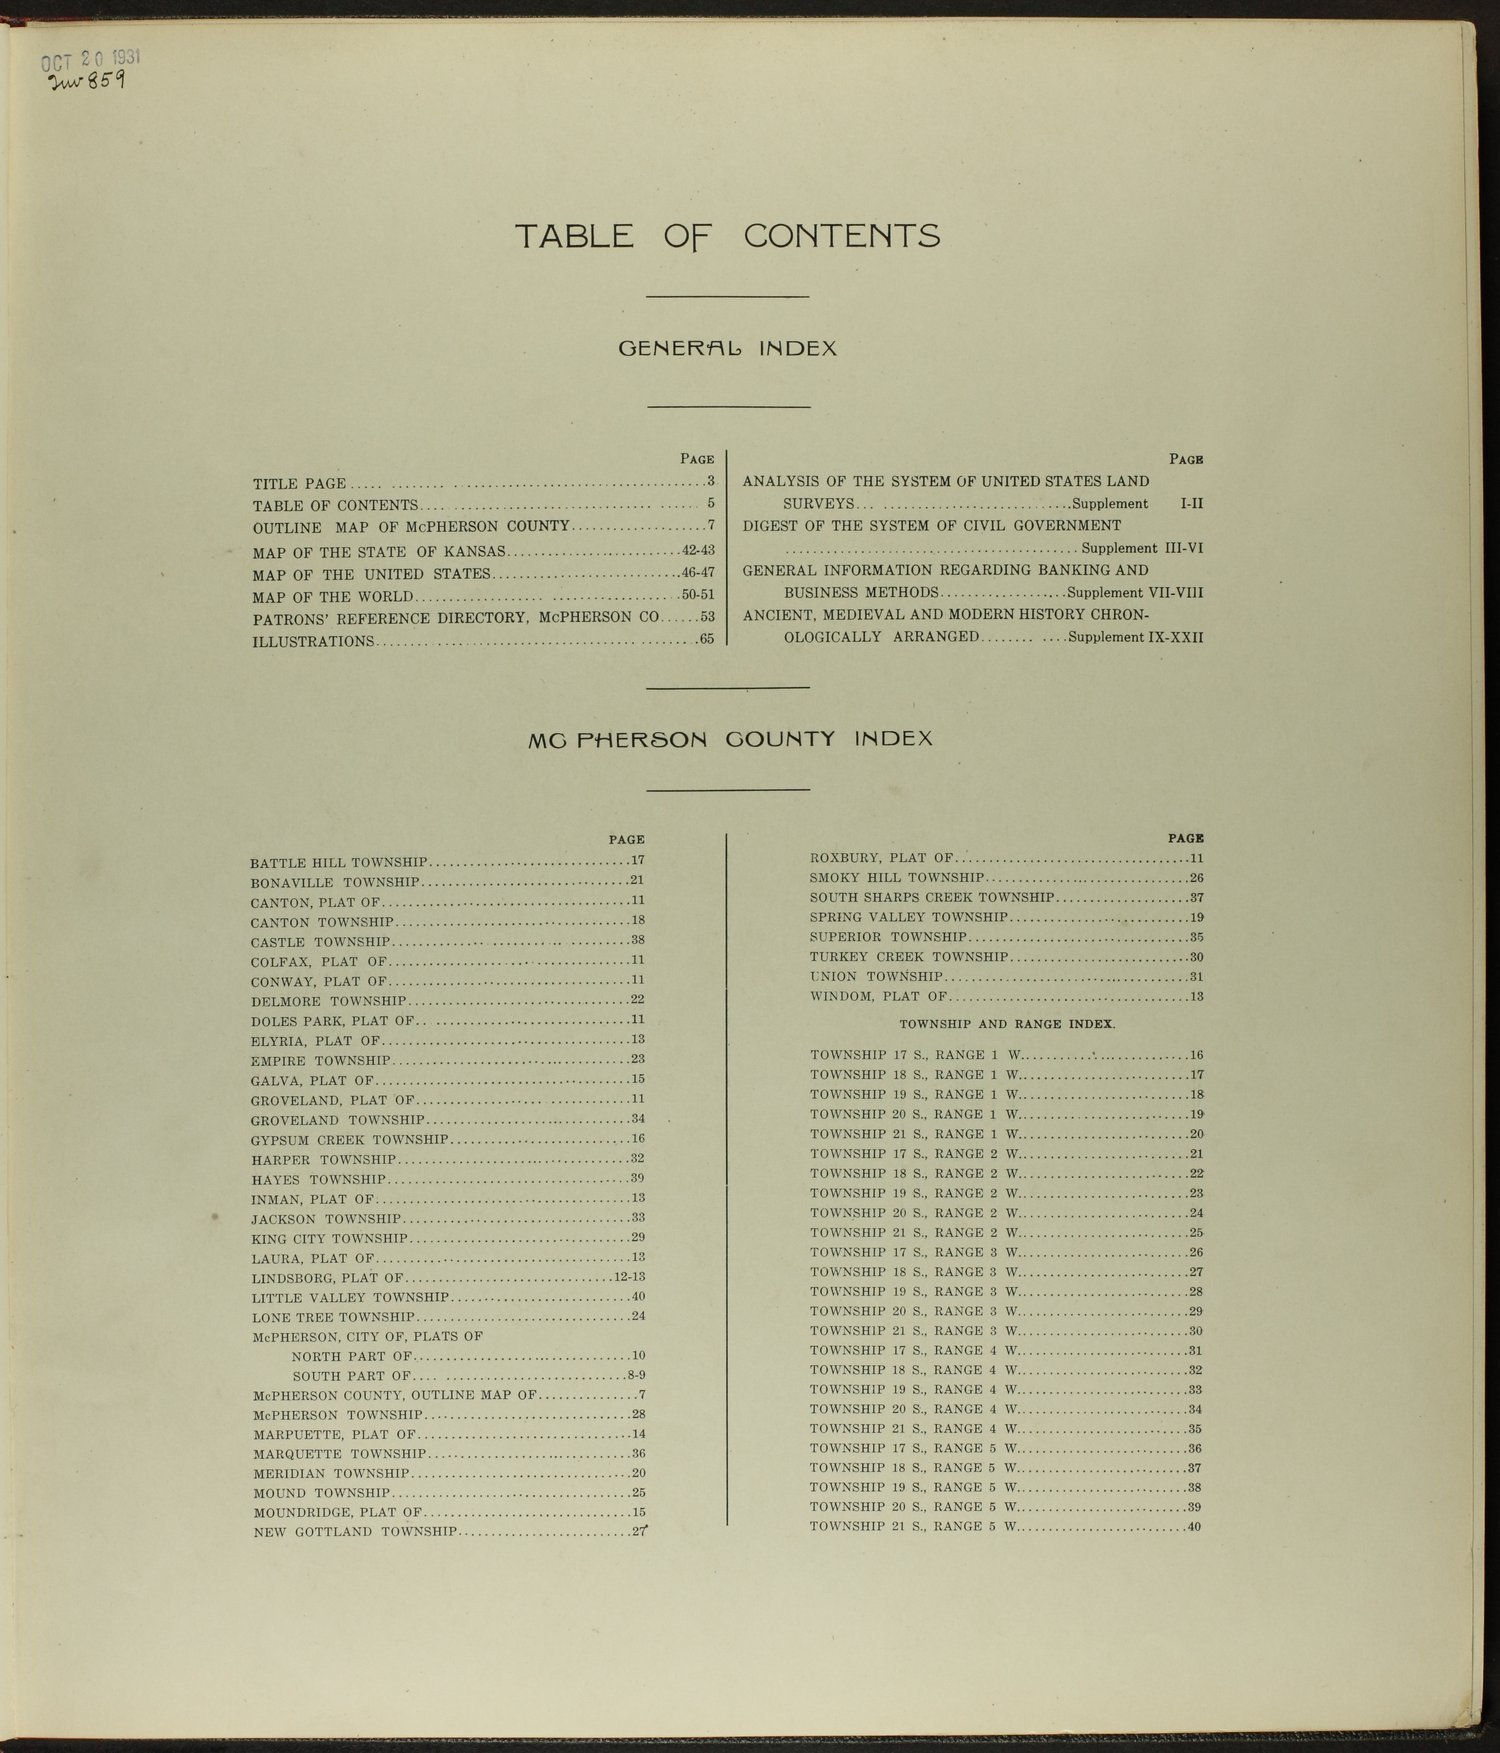 Standard atlas of McPherson County, Kansas - Table of Contents